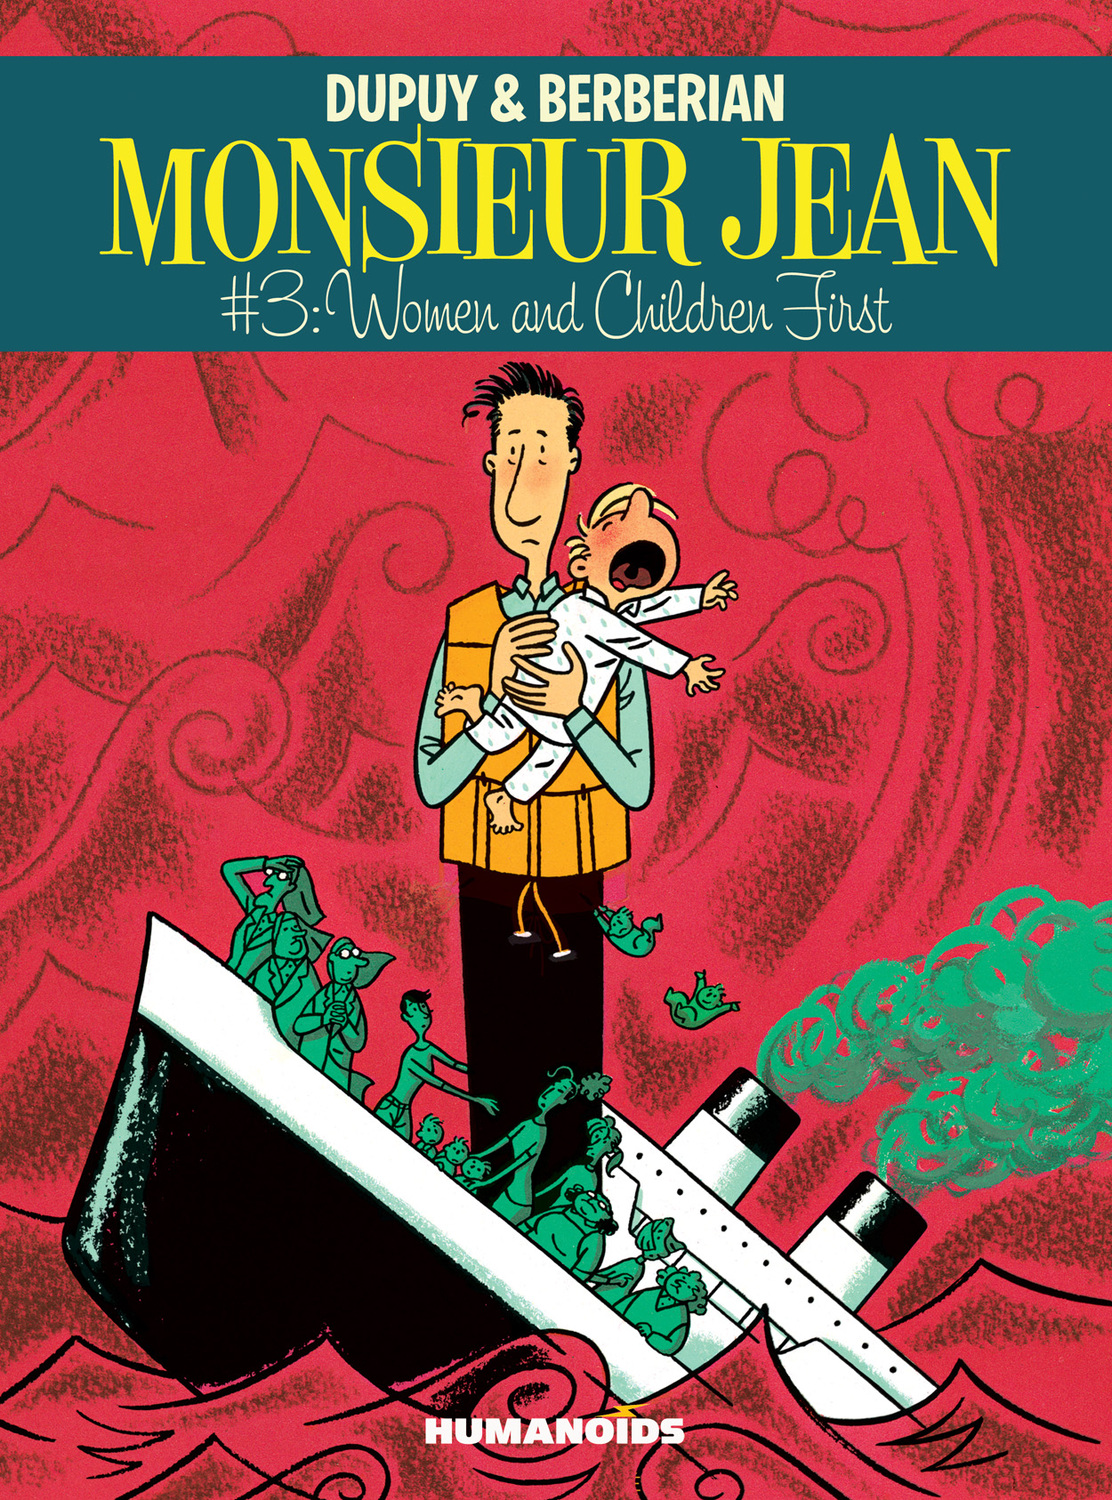 Monsieur Jean #3 : Women and Children First - Digital Comic